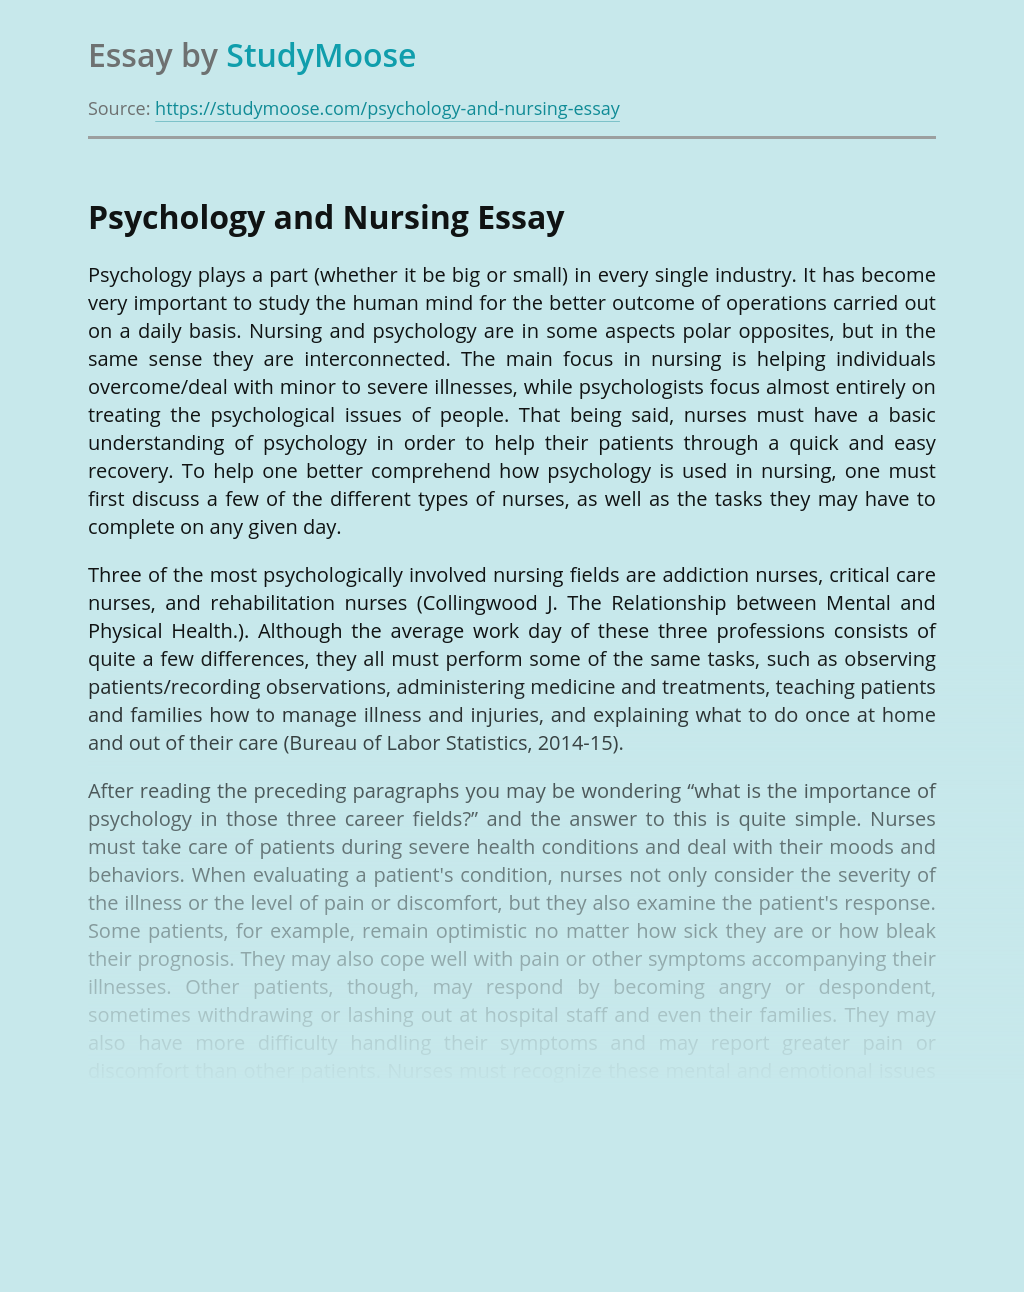 Psychology and Nursing